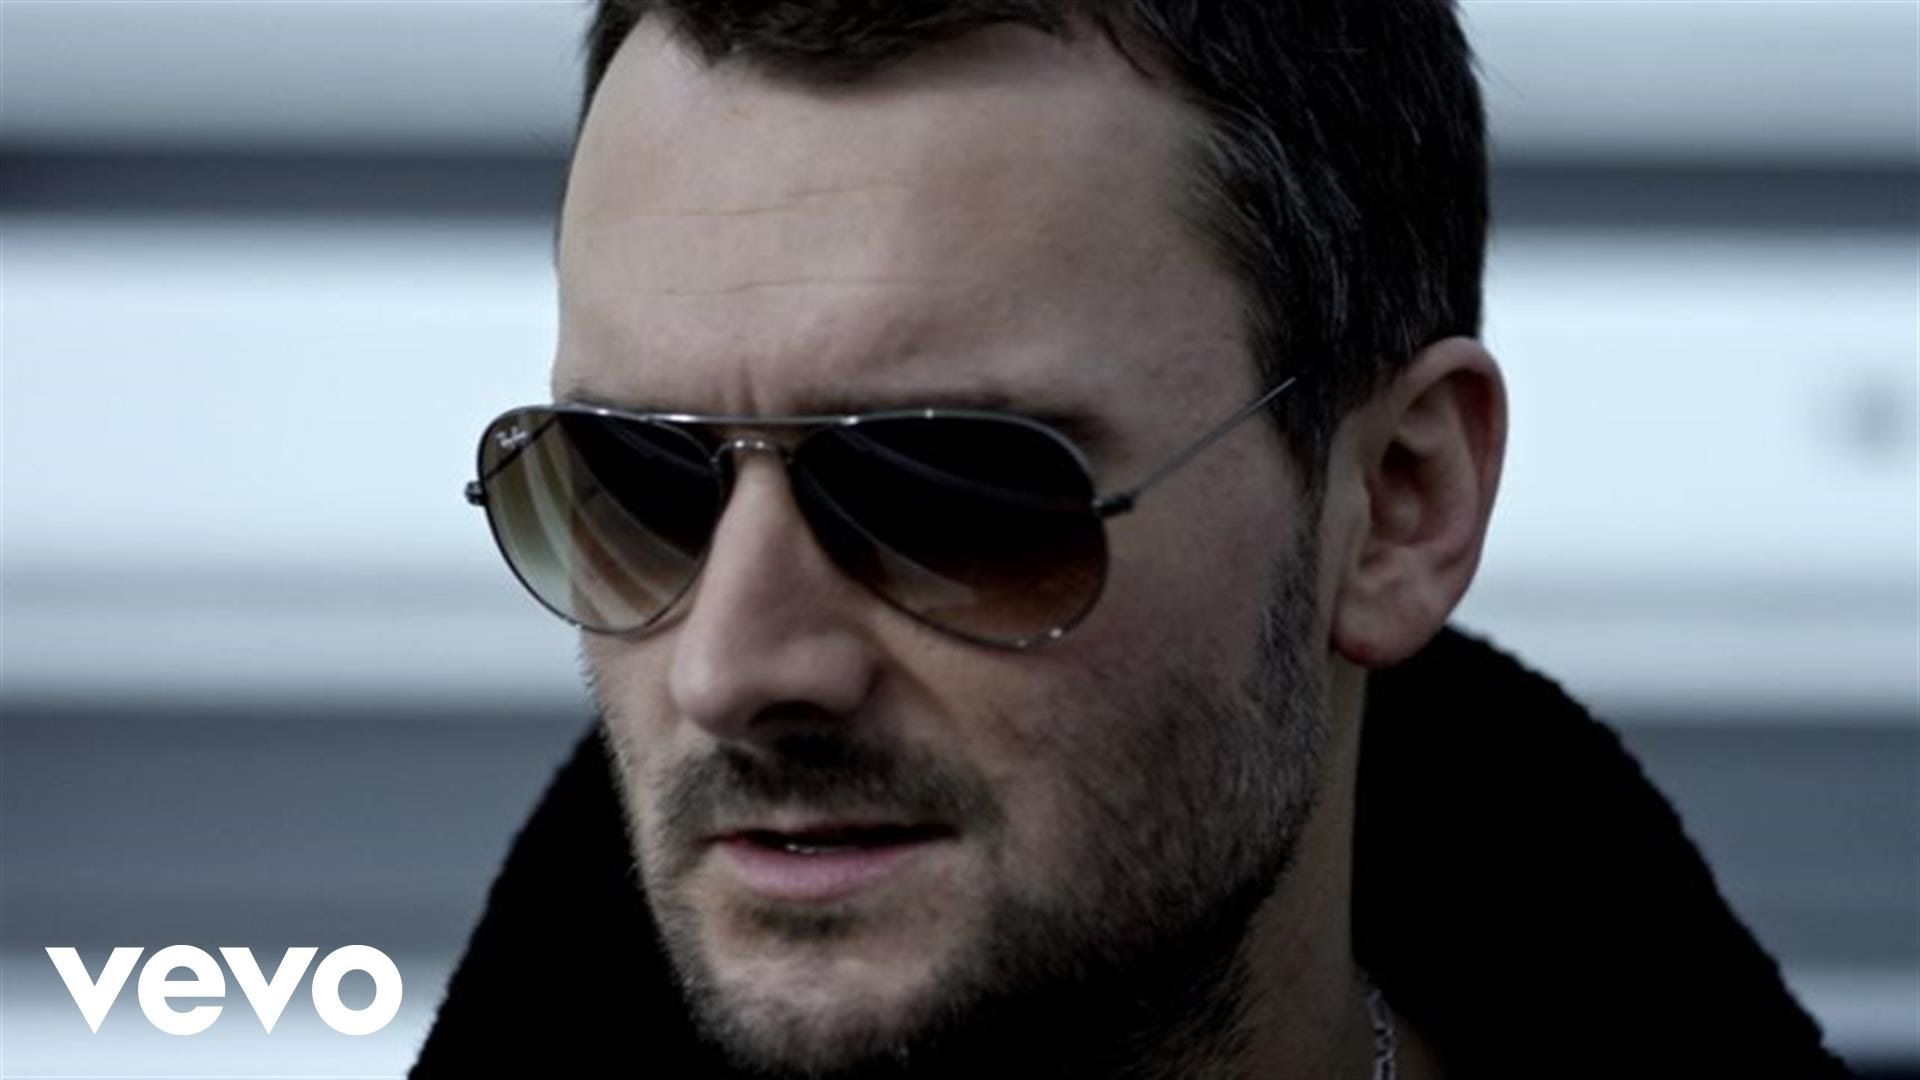 eric church | Eric Church - Talladega - YouTube | Movies/videos